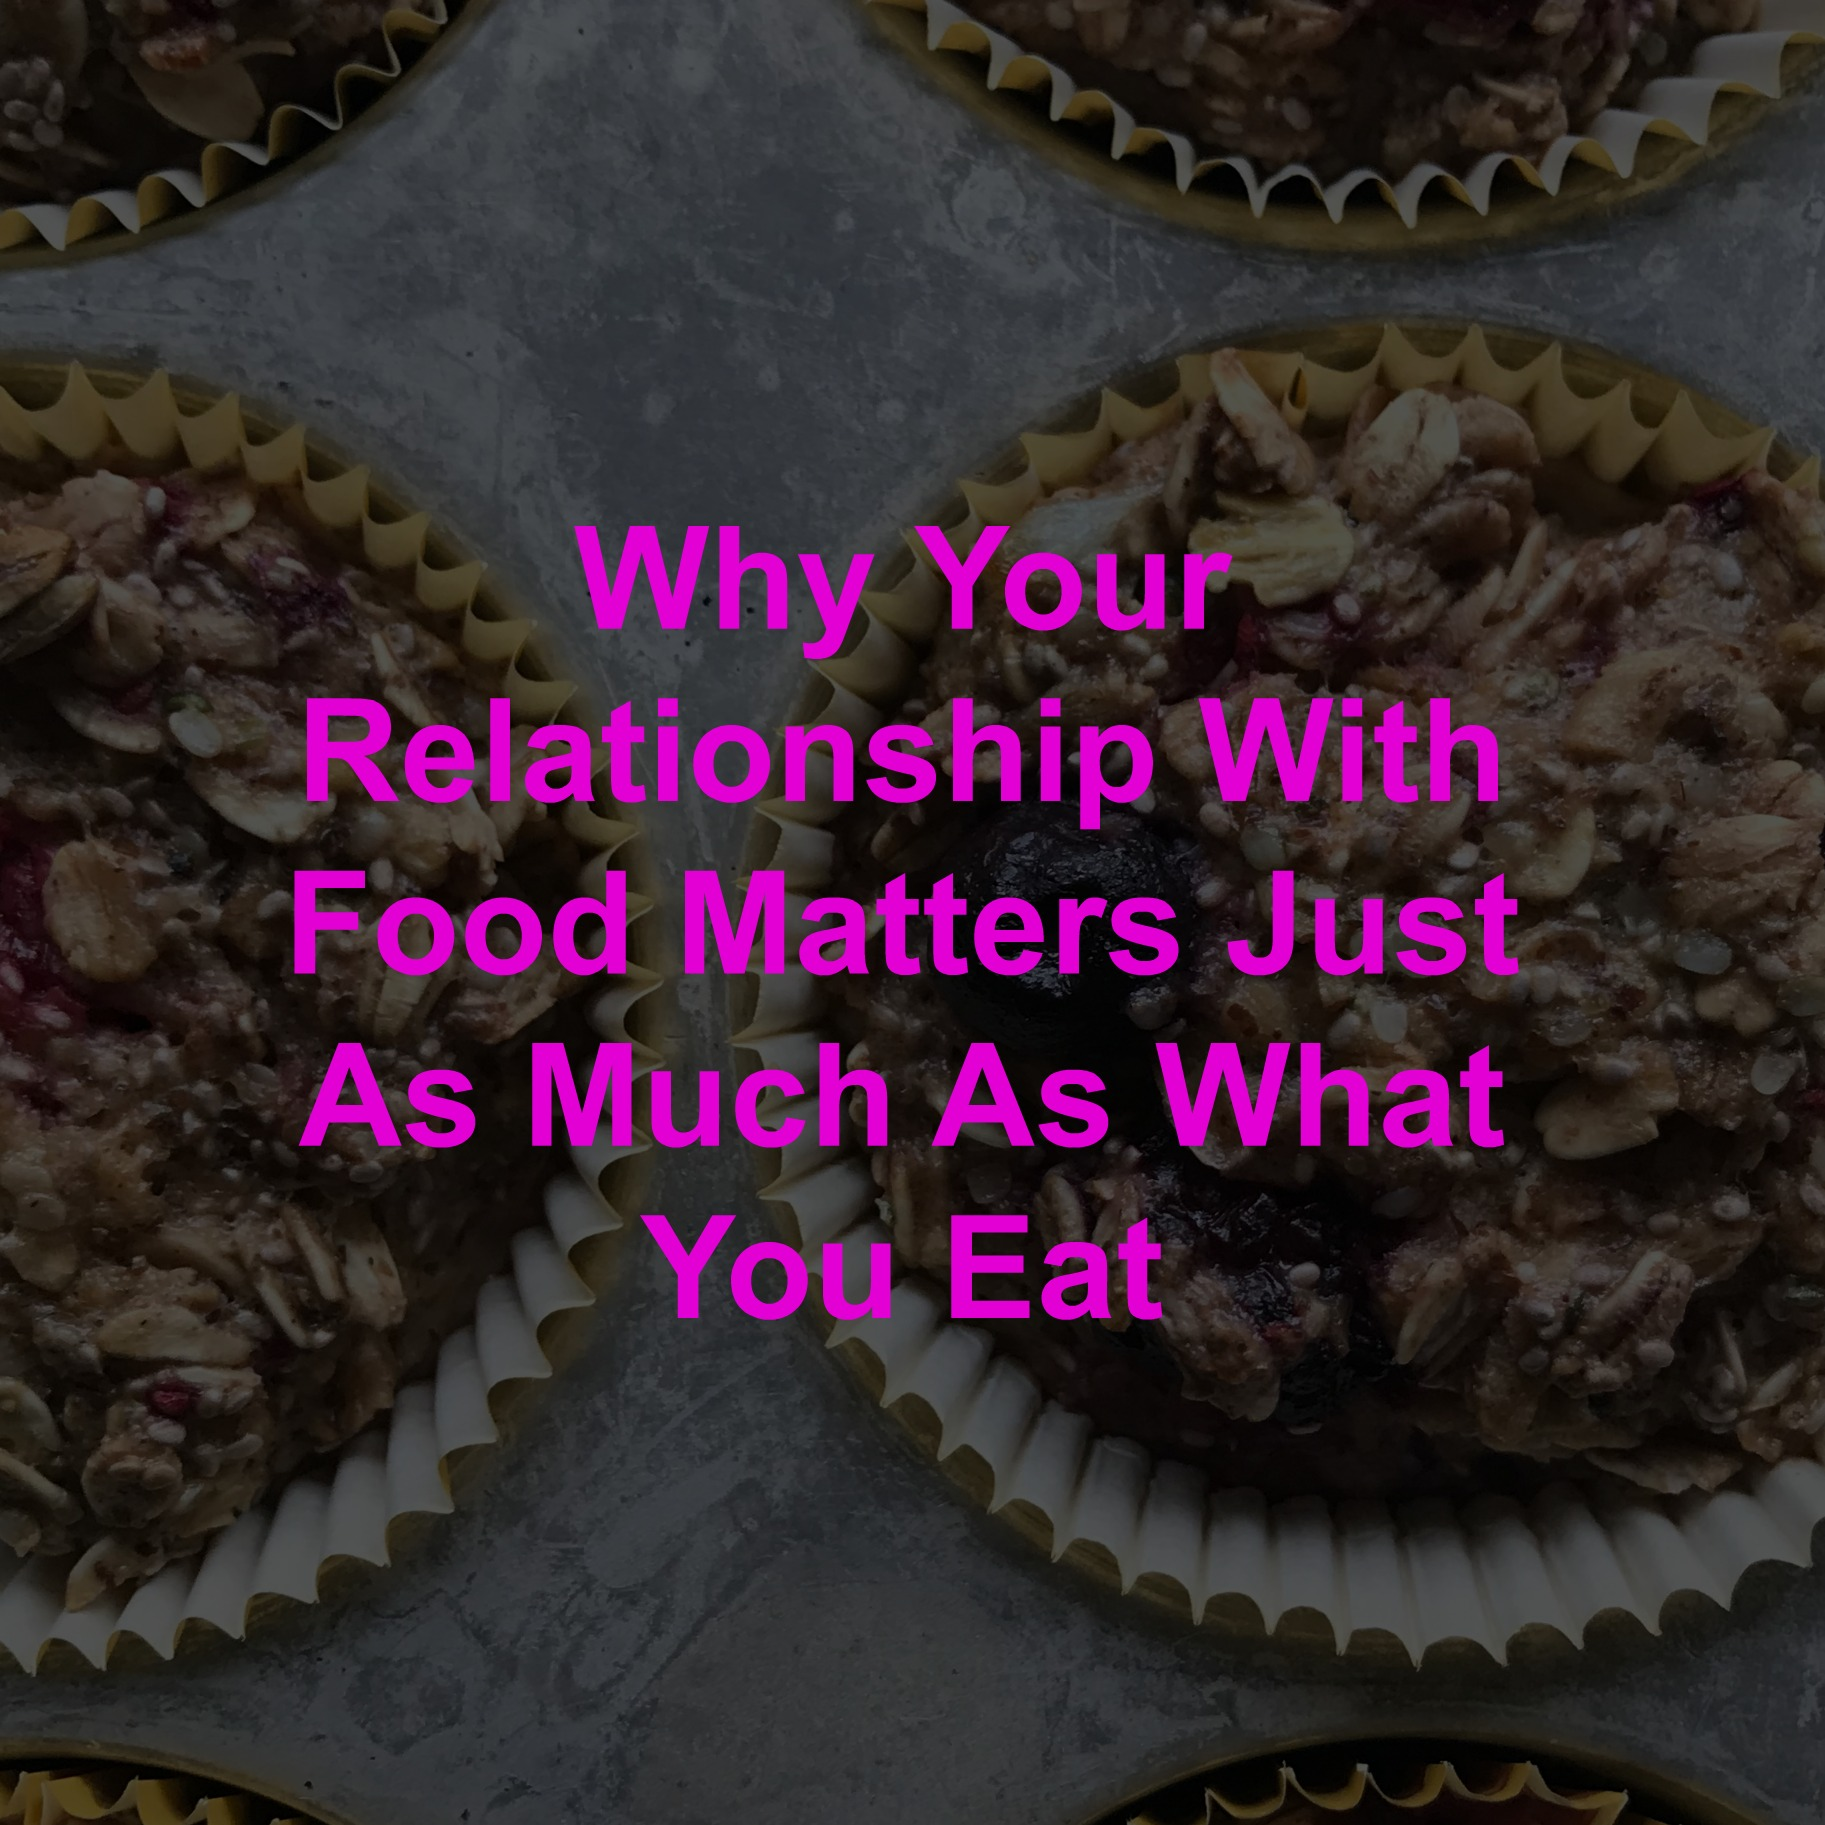 Why Your Relationship With Food Matters Just As Much As What You Eat